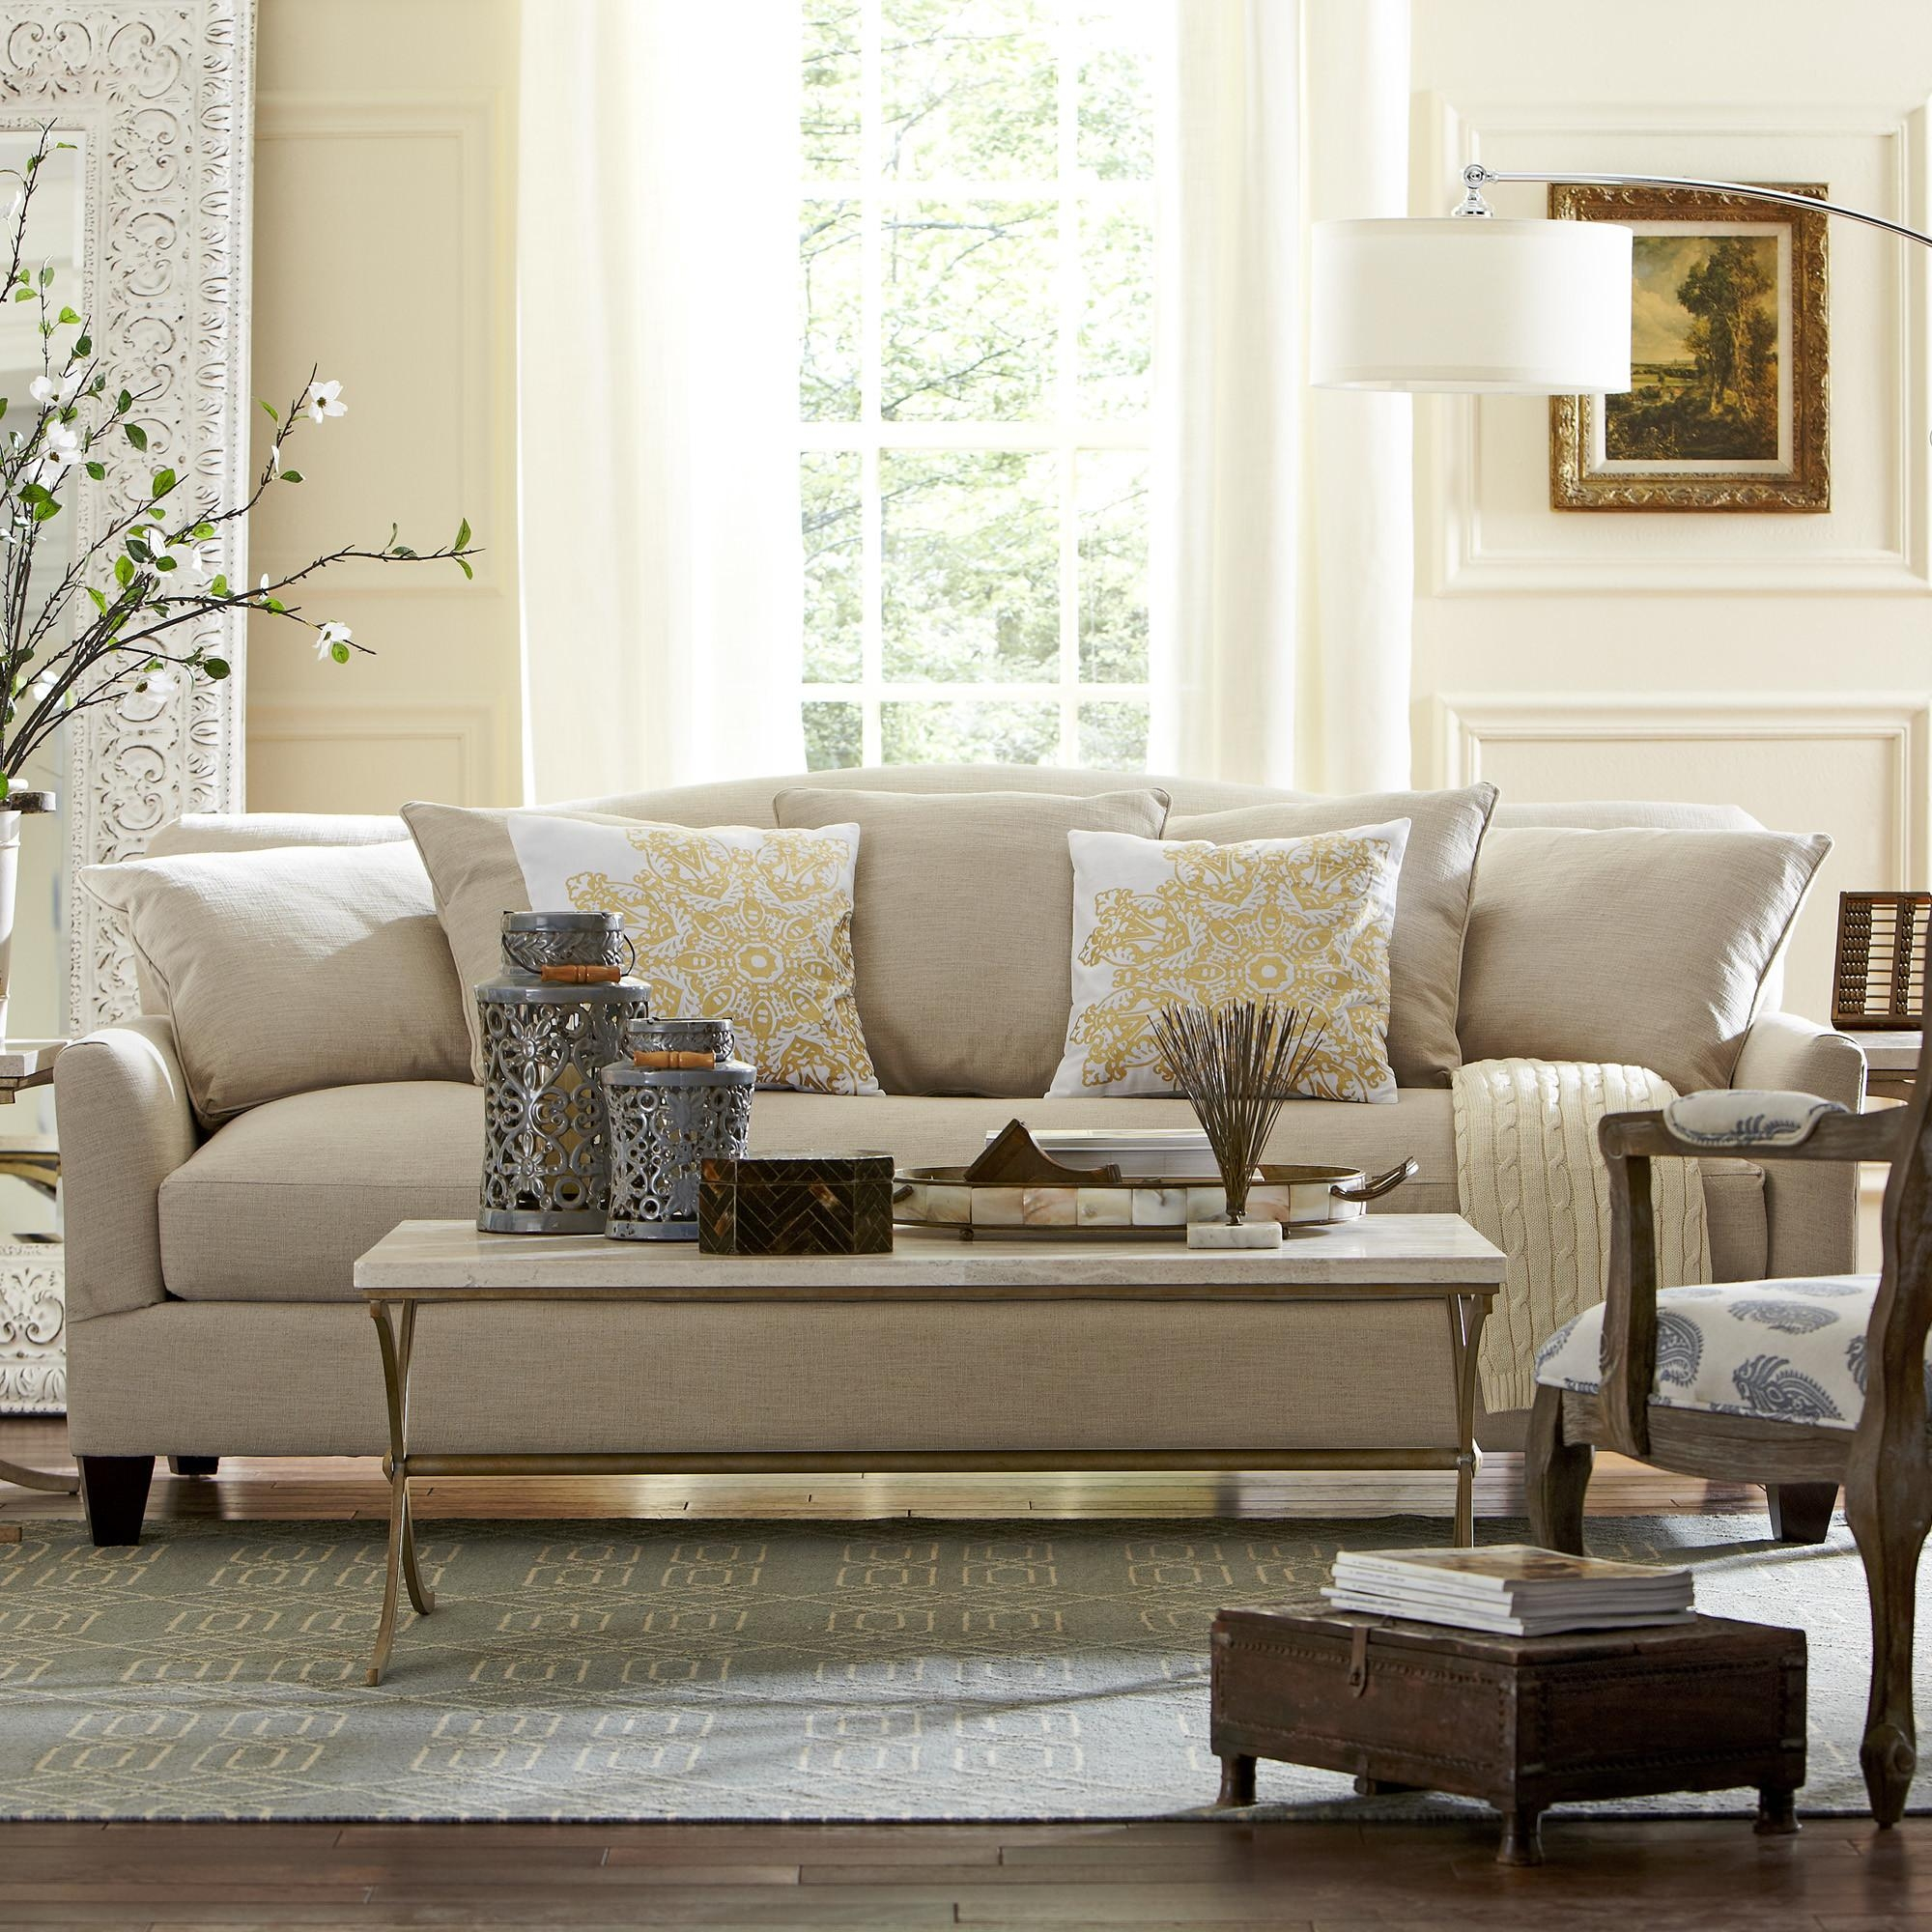 Furniture: West Elm Paige Sofa | West Elm Henry Sectional Reviews Intended For West Elm Sectionals (Image 12 of 20)